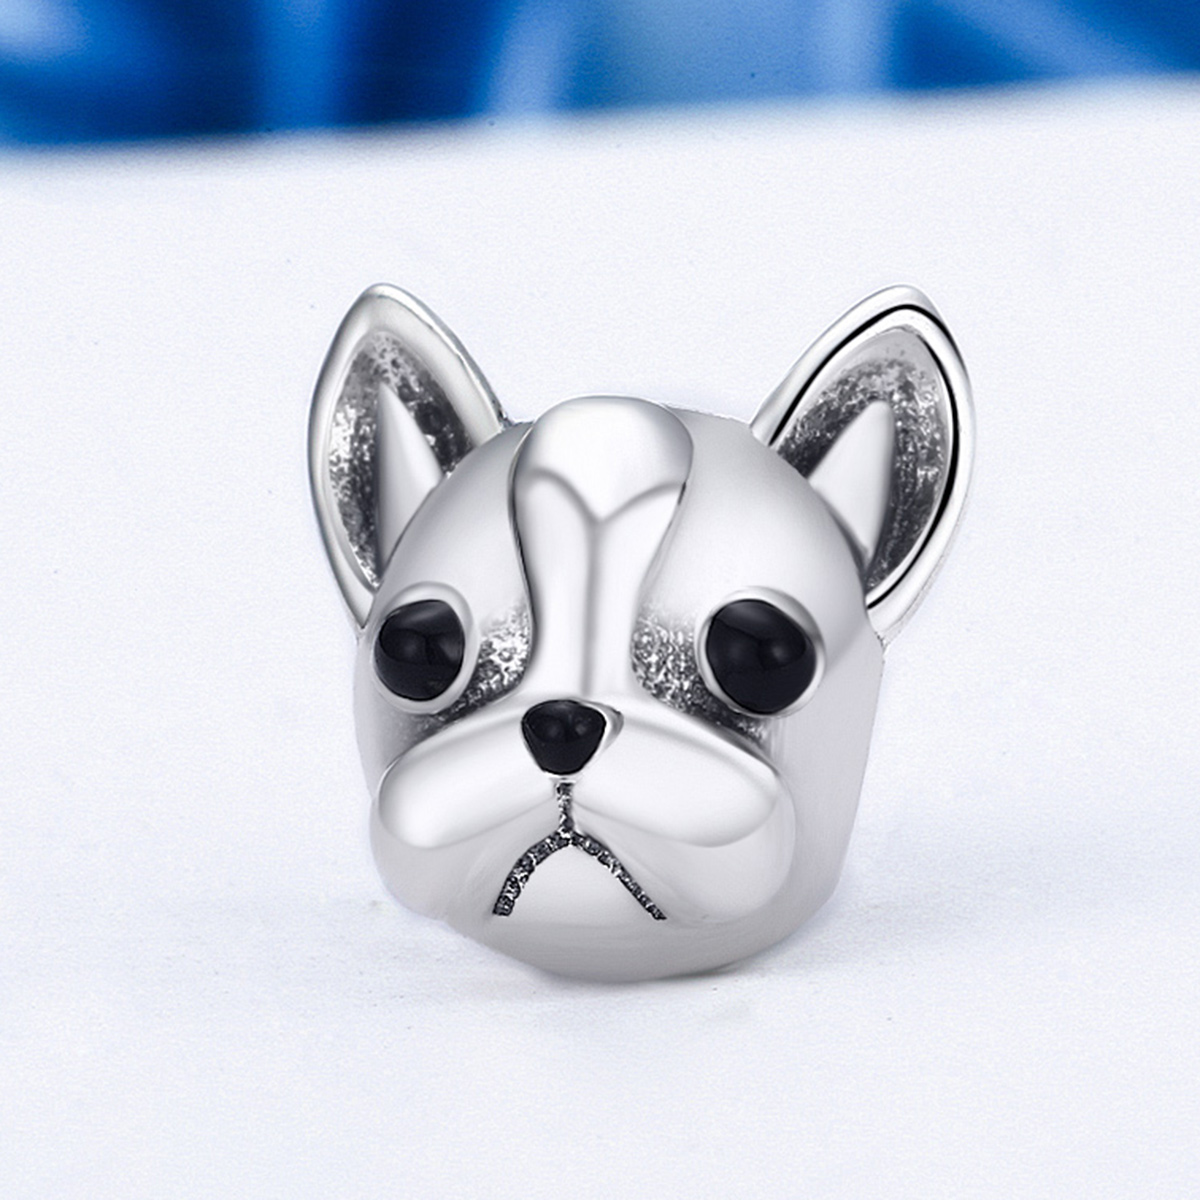 2018 Authentic 925 Sterling Silver Chihuahua Dog Charm Bead Fit Pandora Bracelets Bangles Women Diy Gift Jewelry In Beads From Accessories On